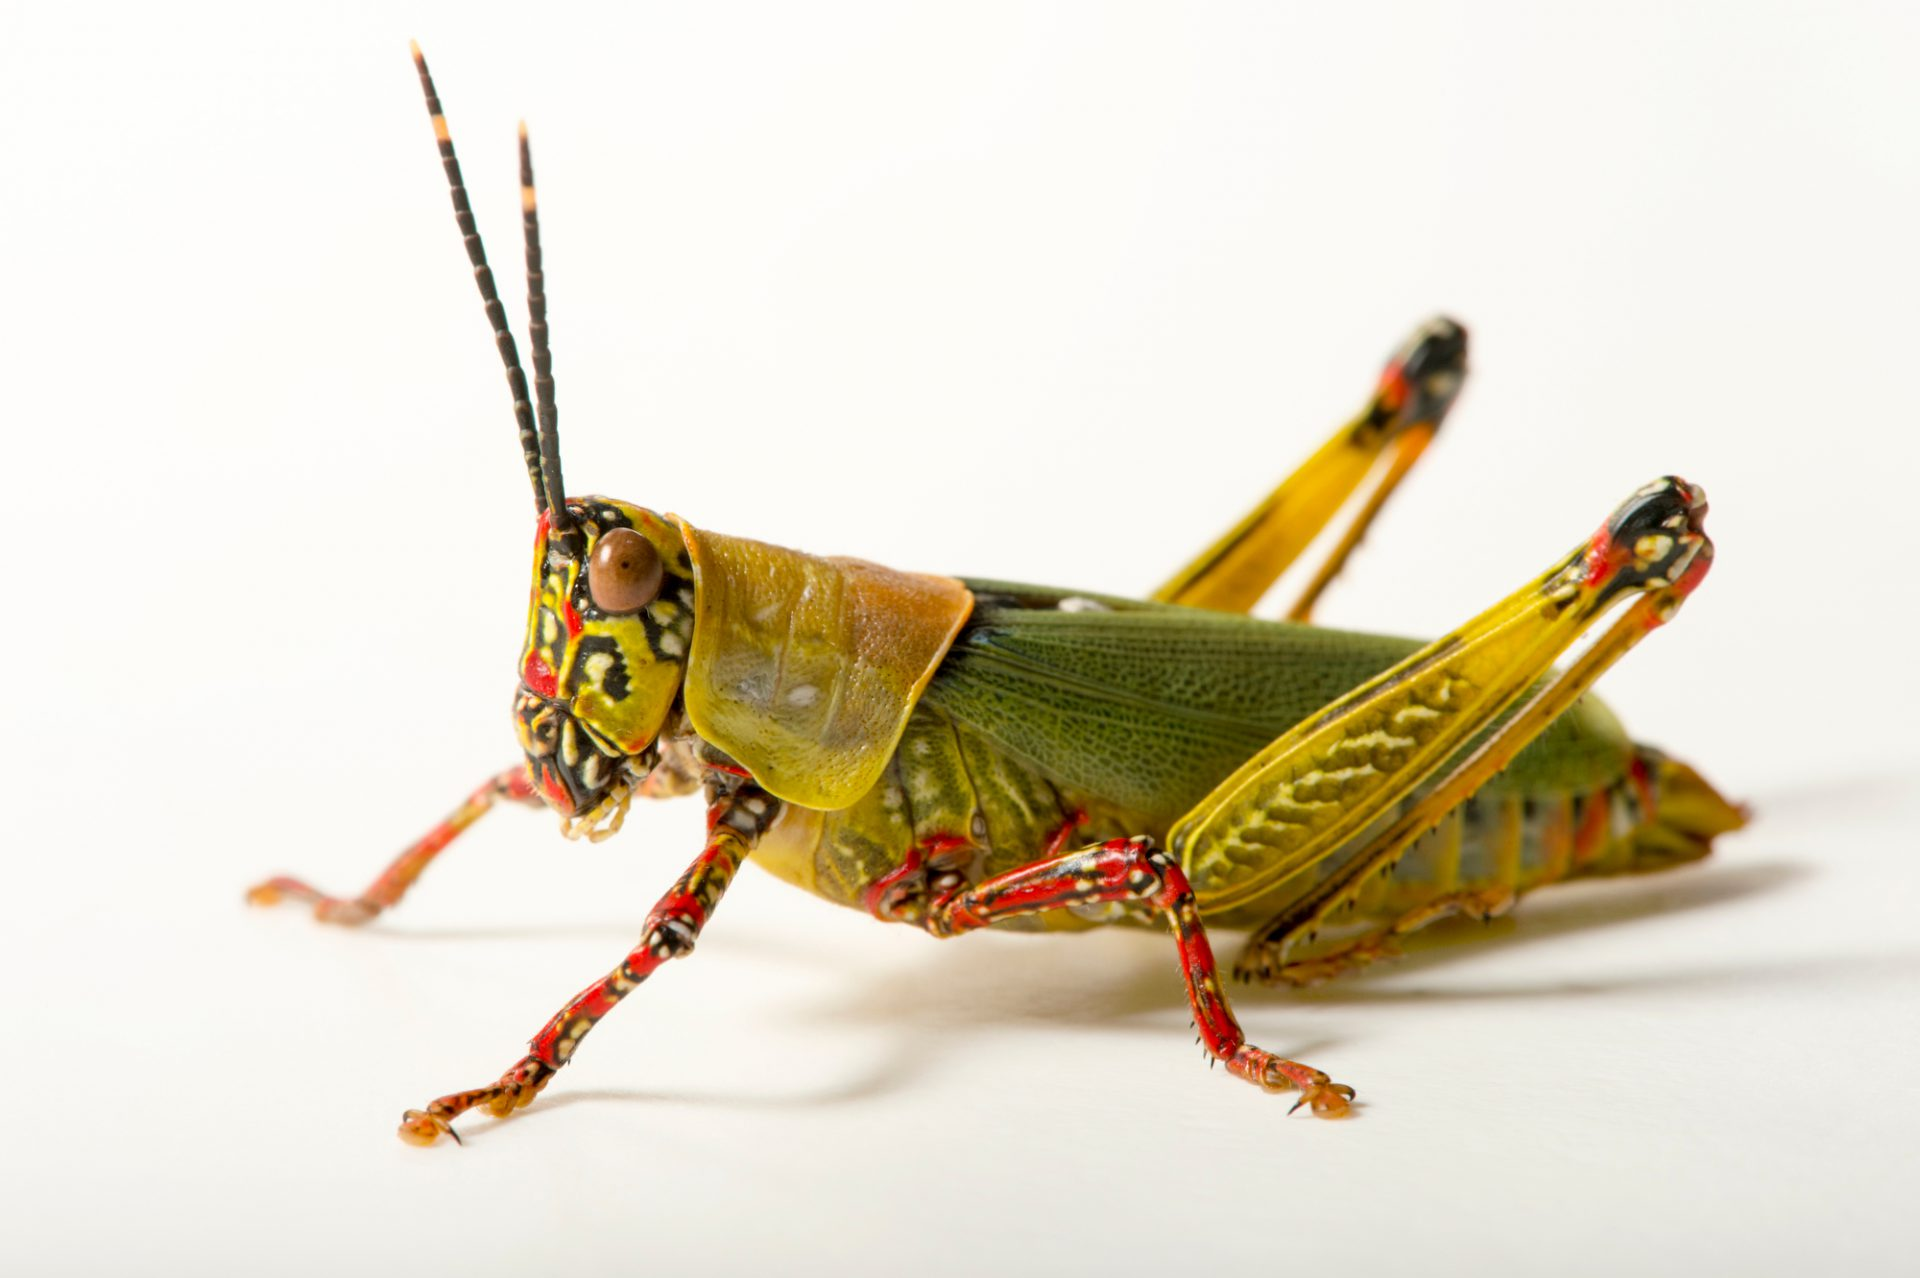 Photo: Variegated grasshopper (Zonocerus variegatus) at the Budapest Zoo.